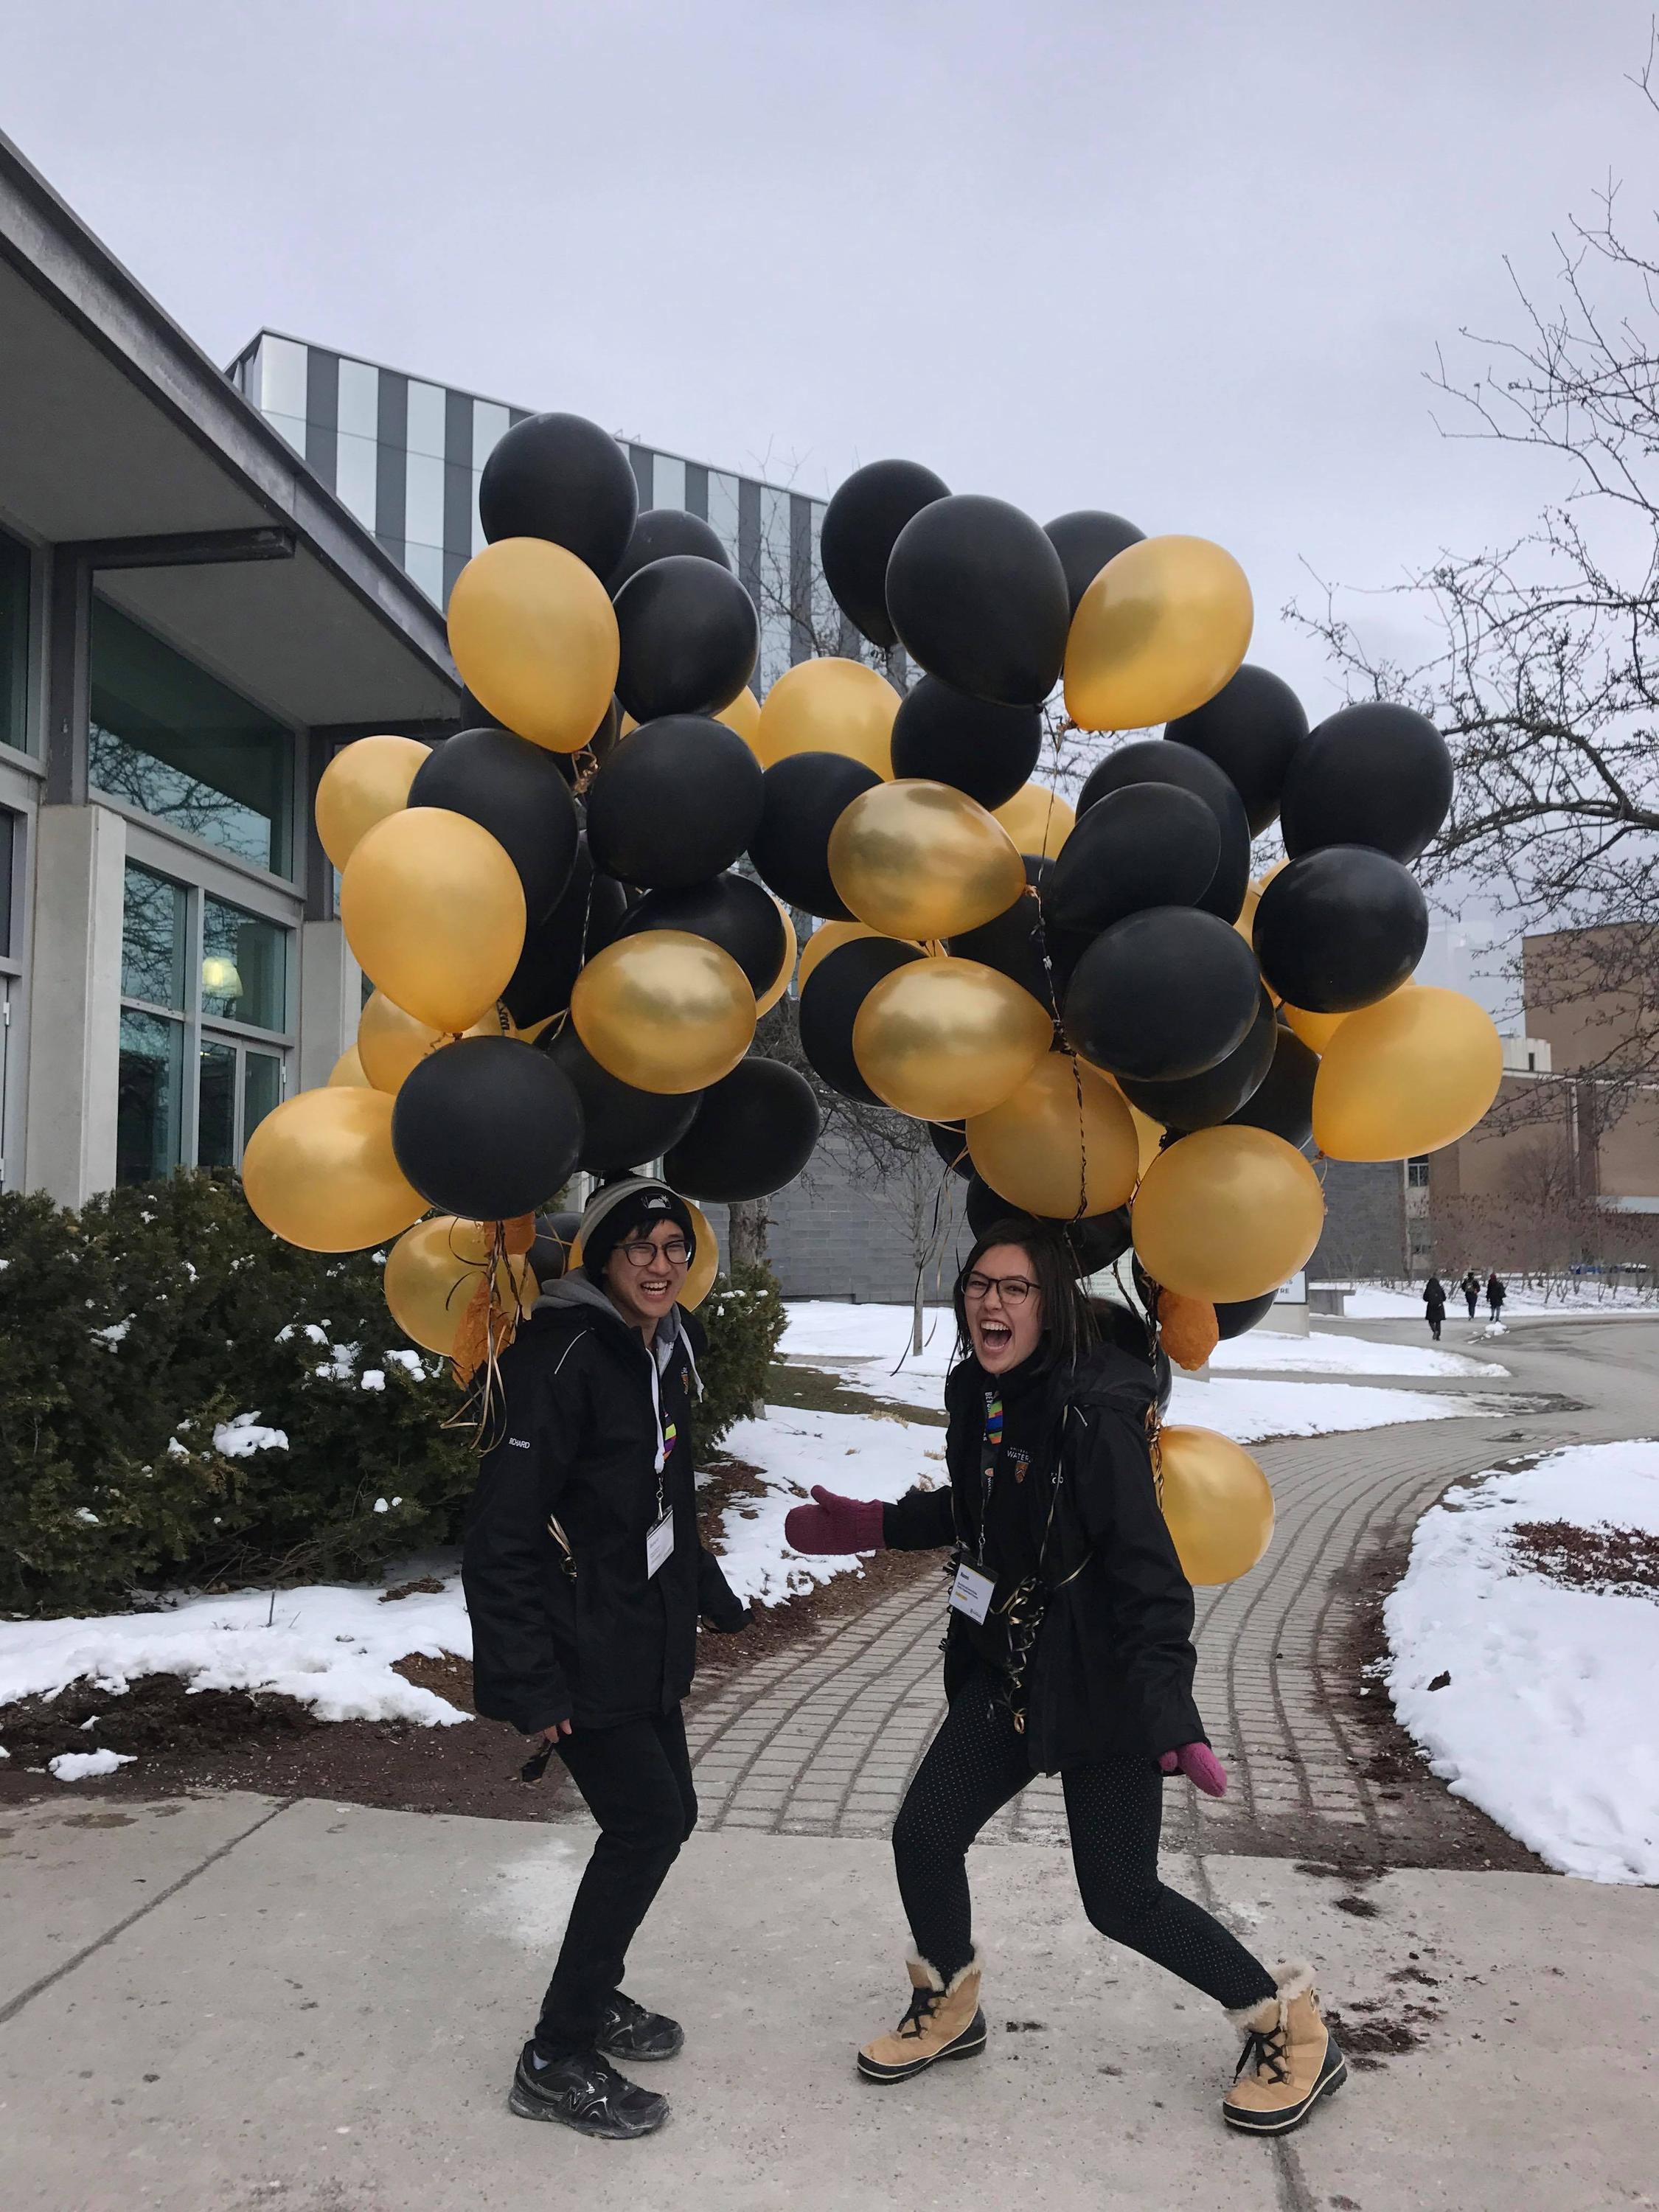 Richard Nguyen and a colleague with balloons